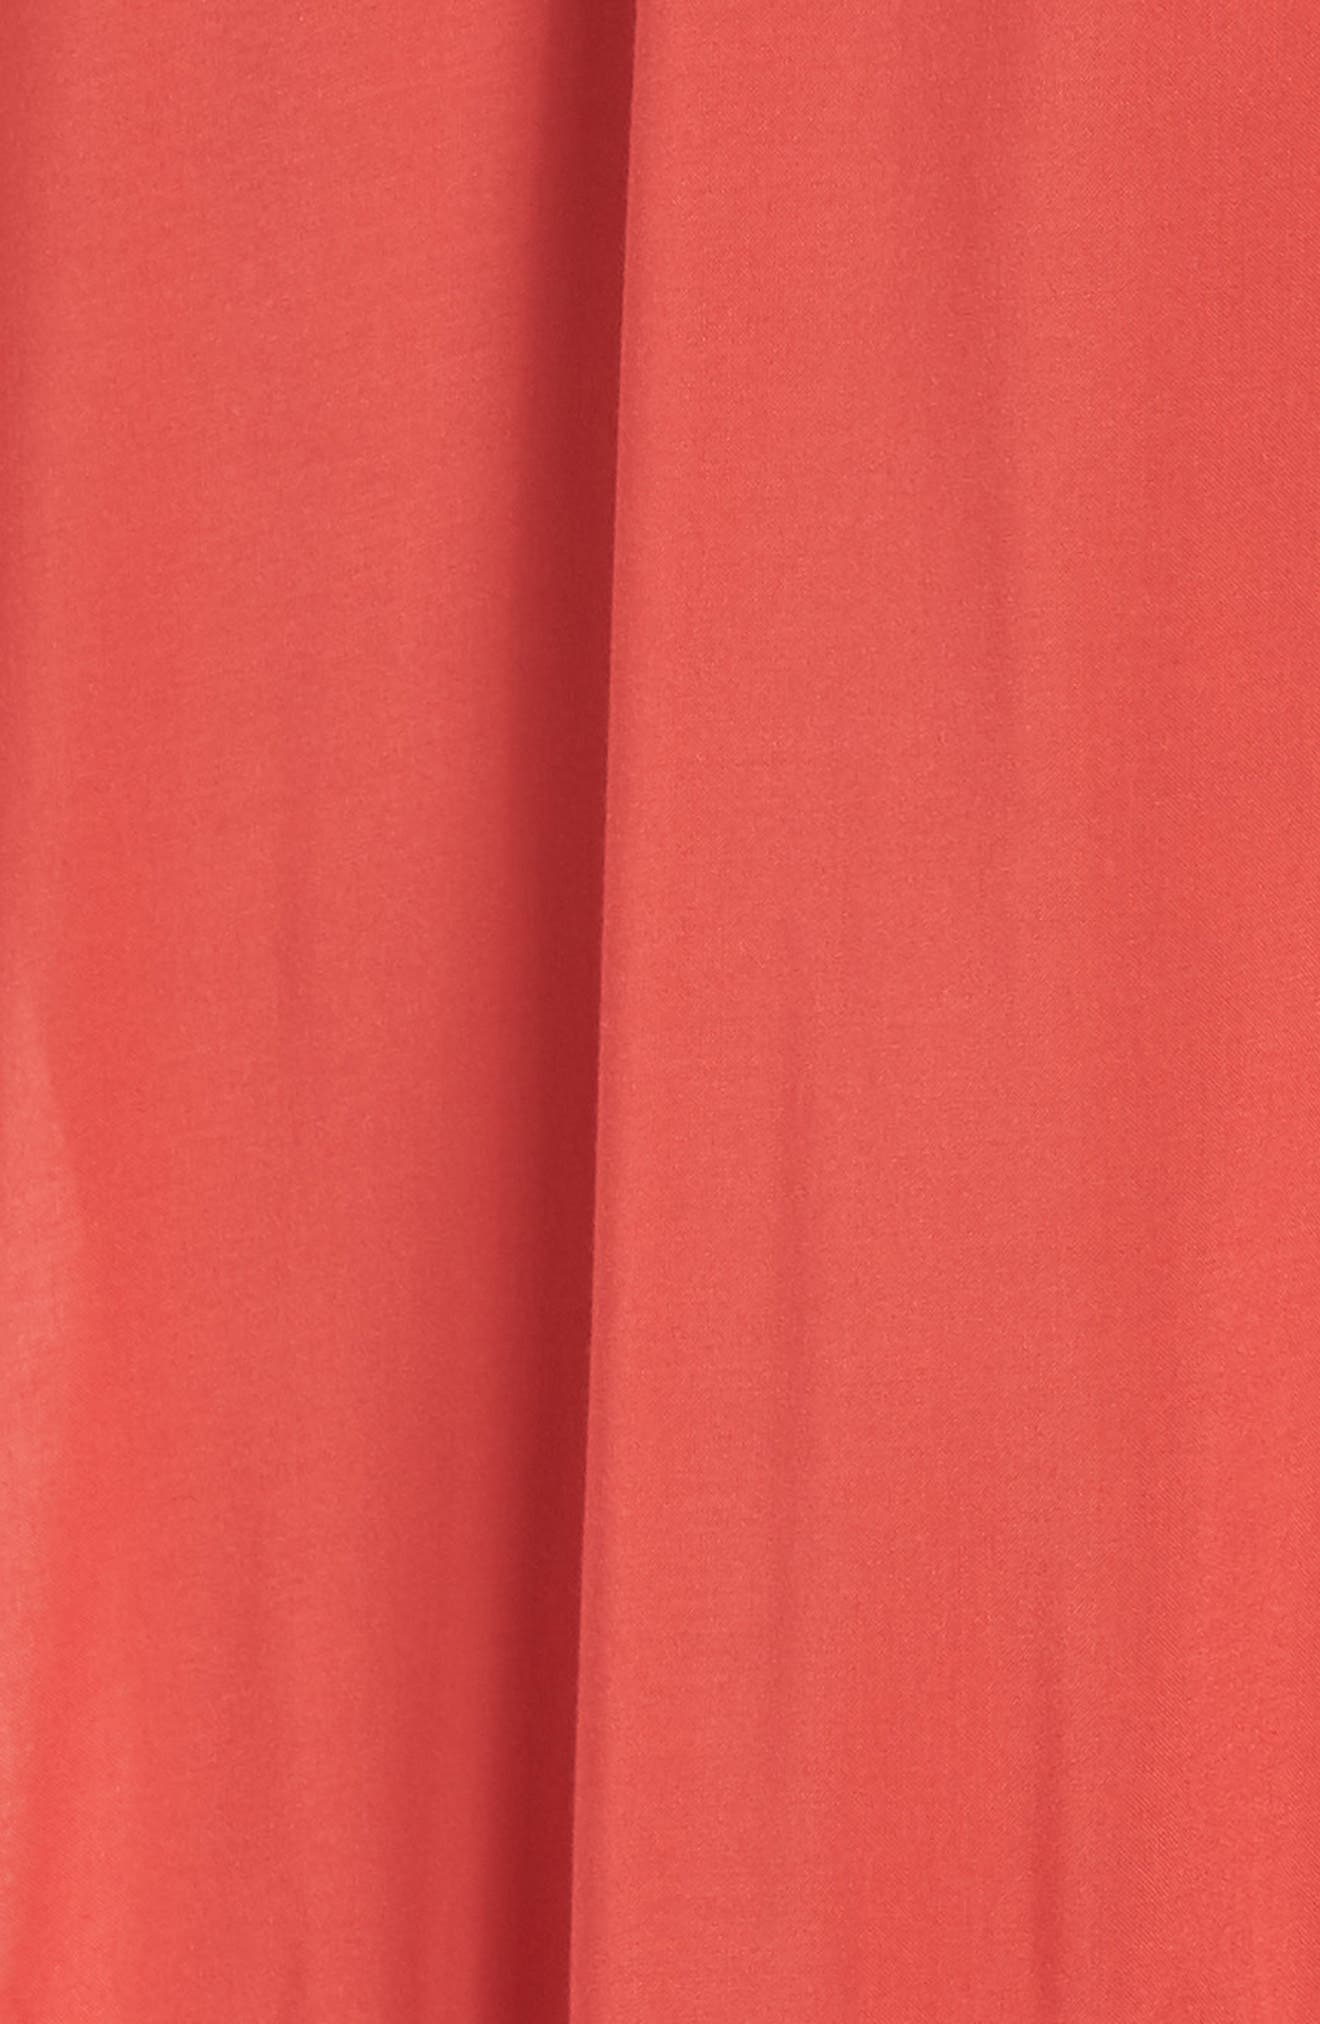 Maxi Cover-Up Dress,                             Alternate thumbnail 5, color,                             CORAL